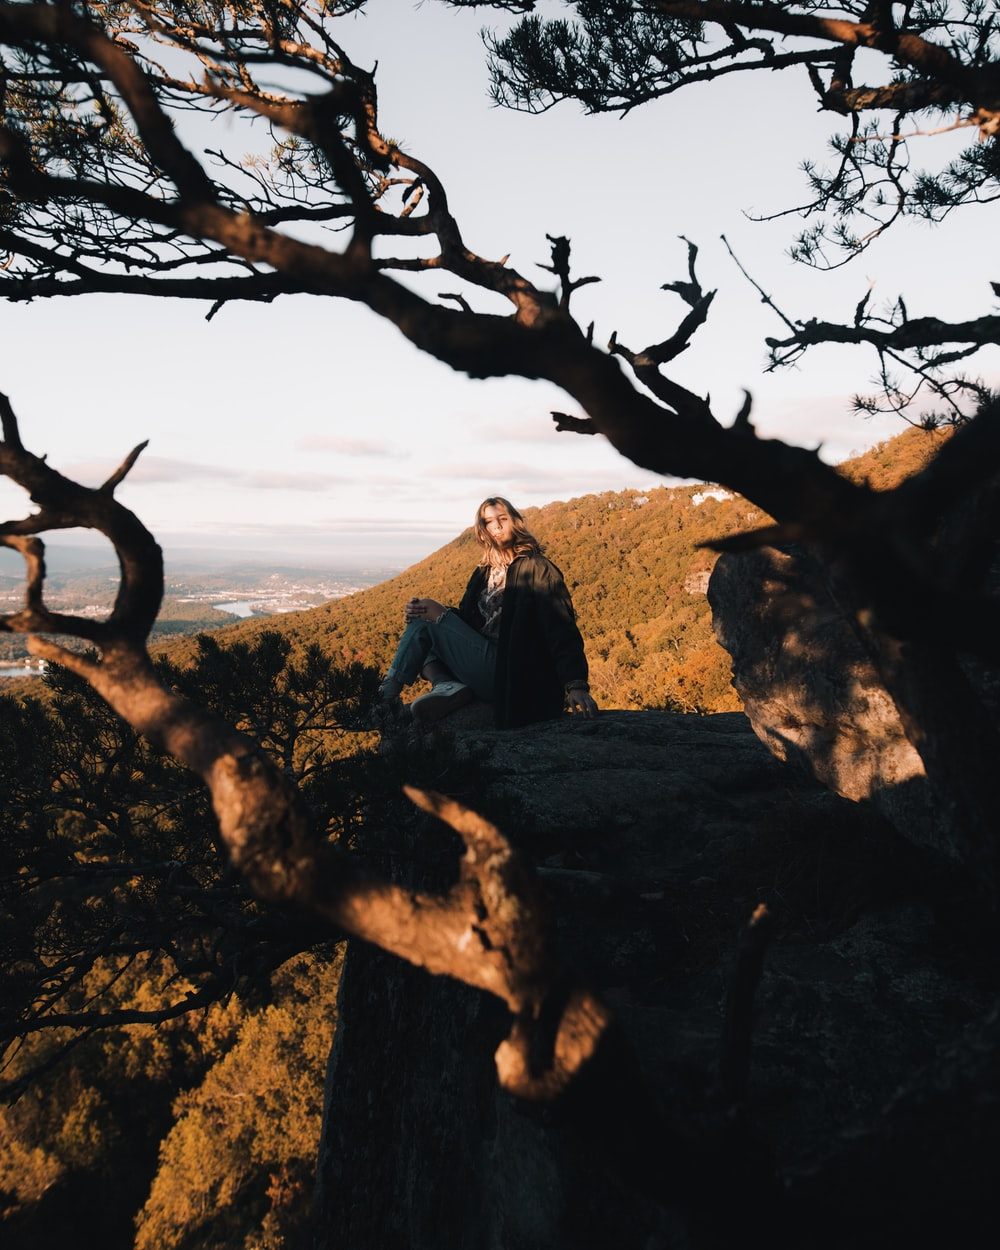 woman sitting on cliff near tree branches